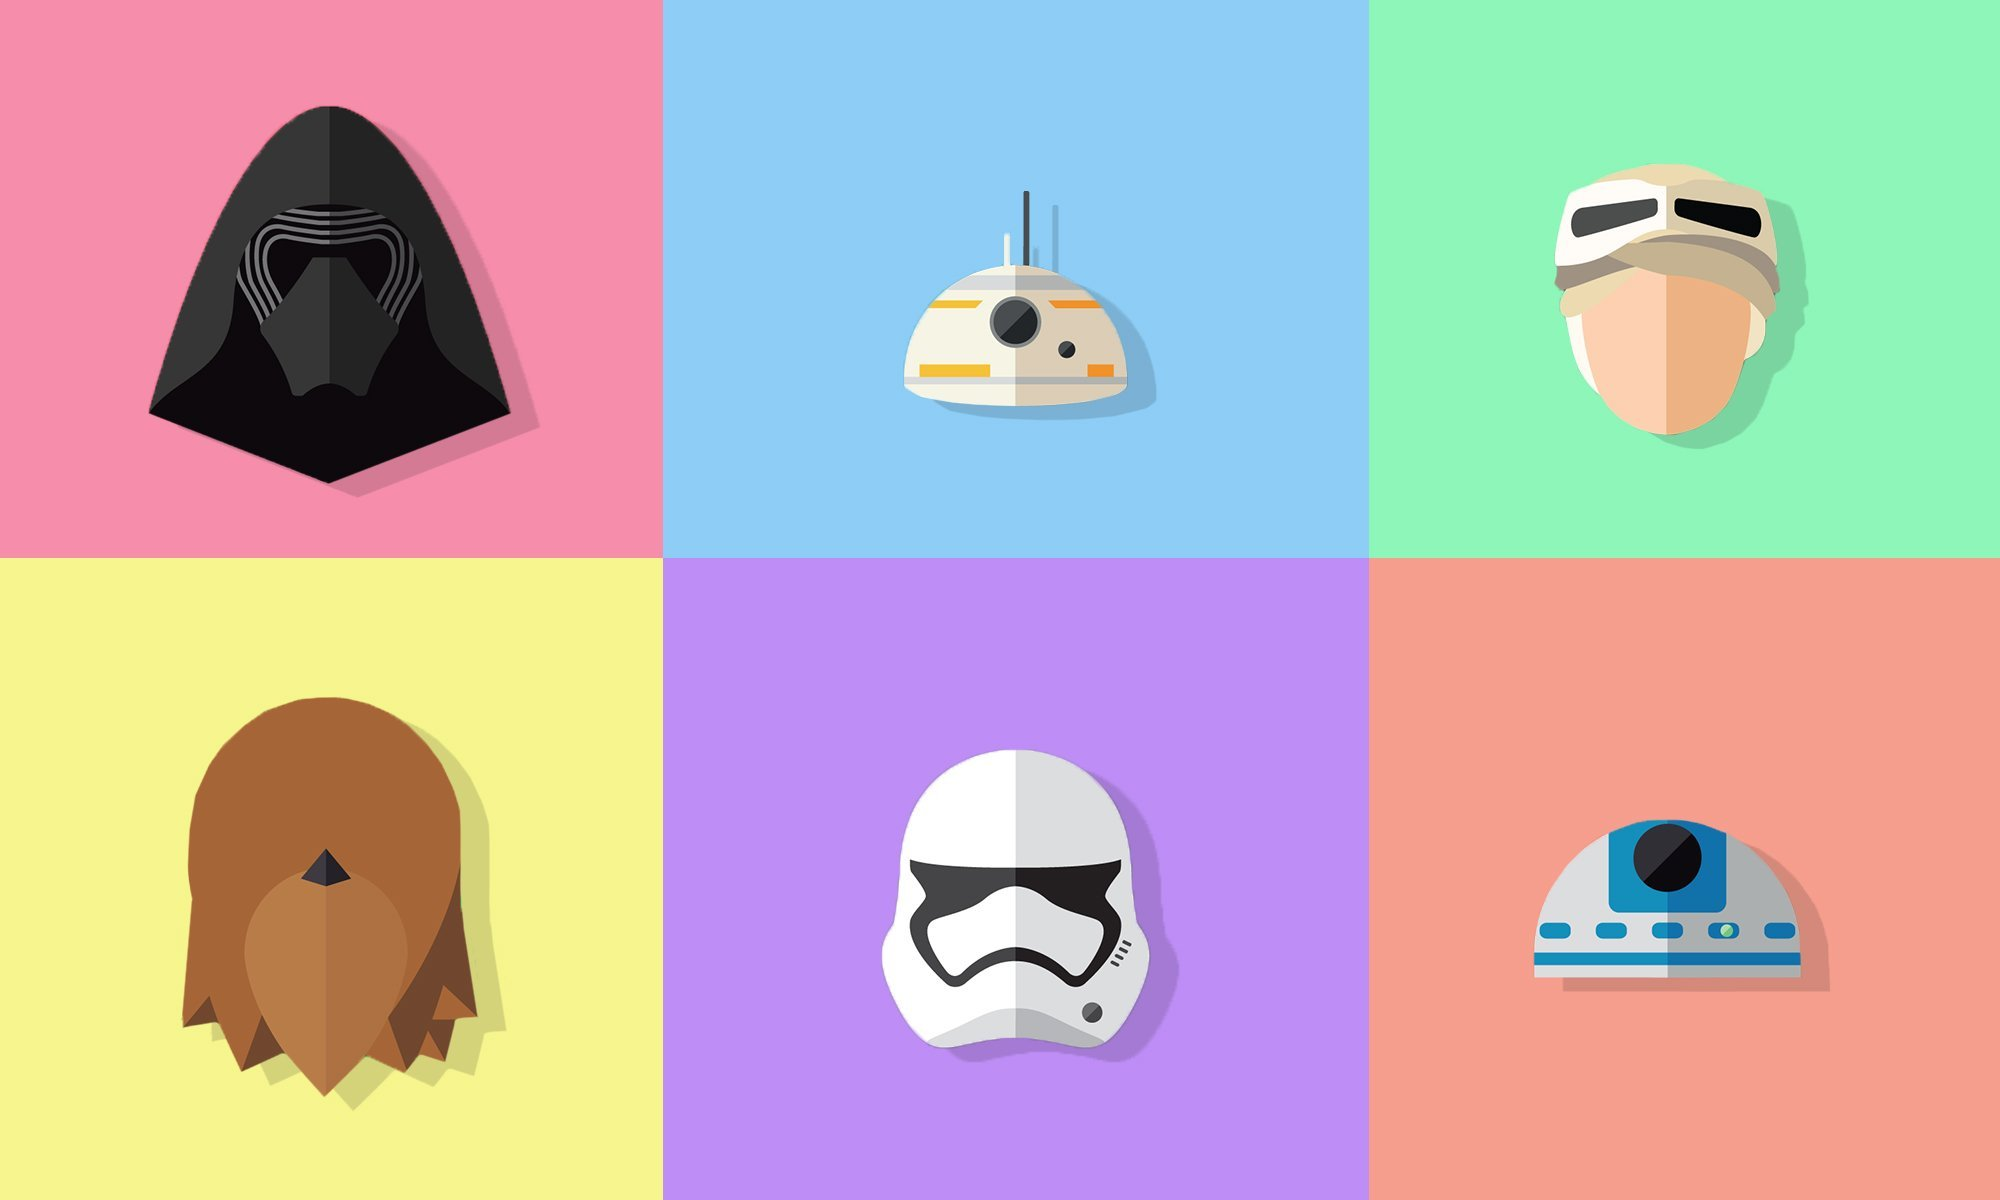 Must-have Star Wars gadgets and accessories